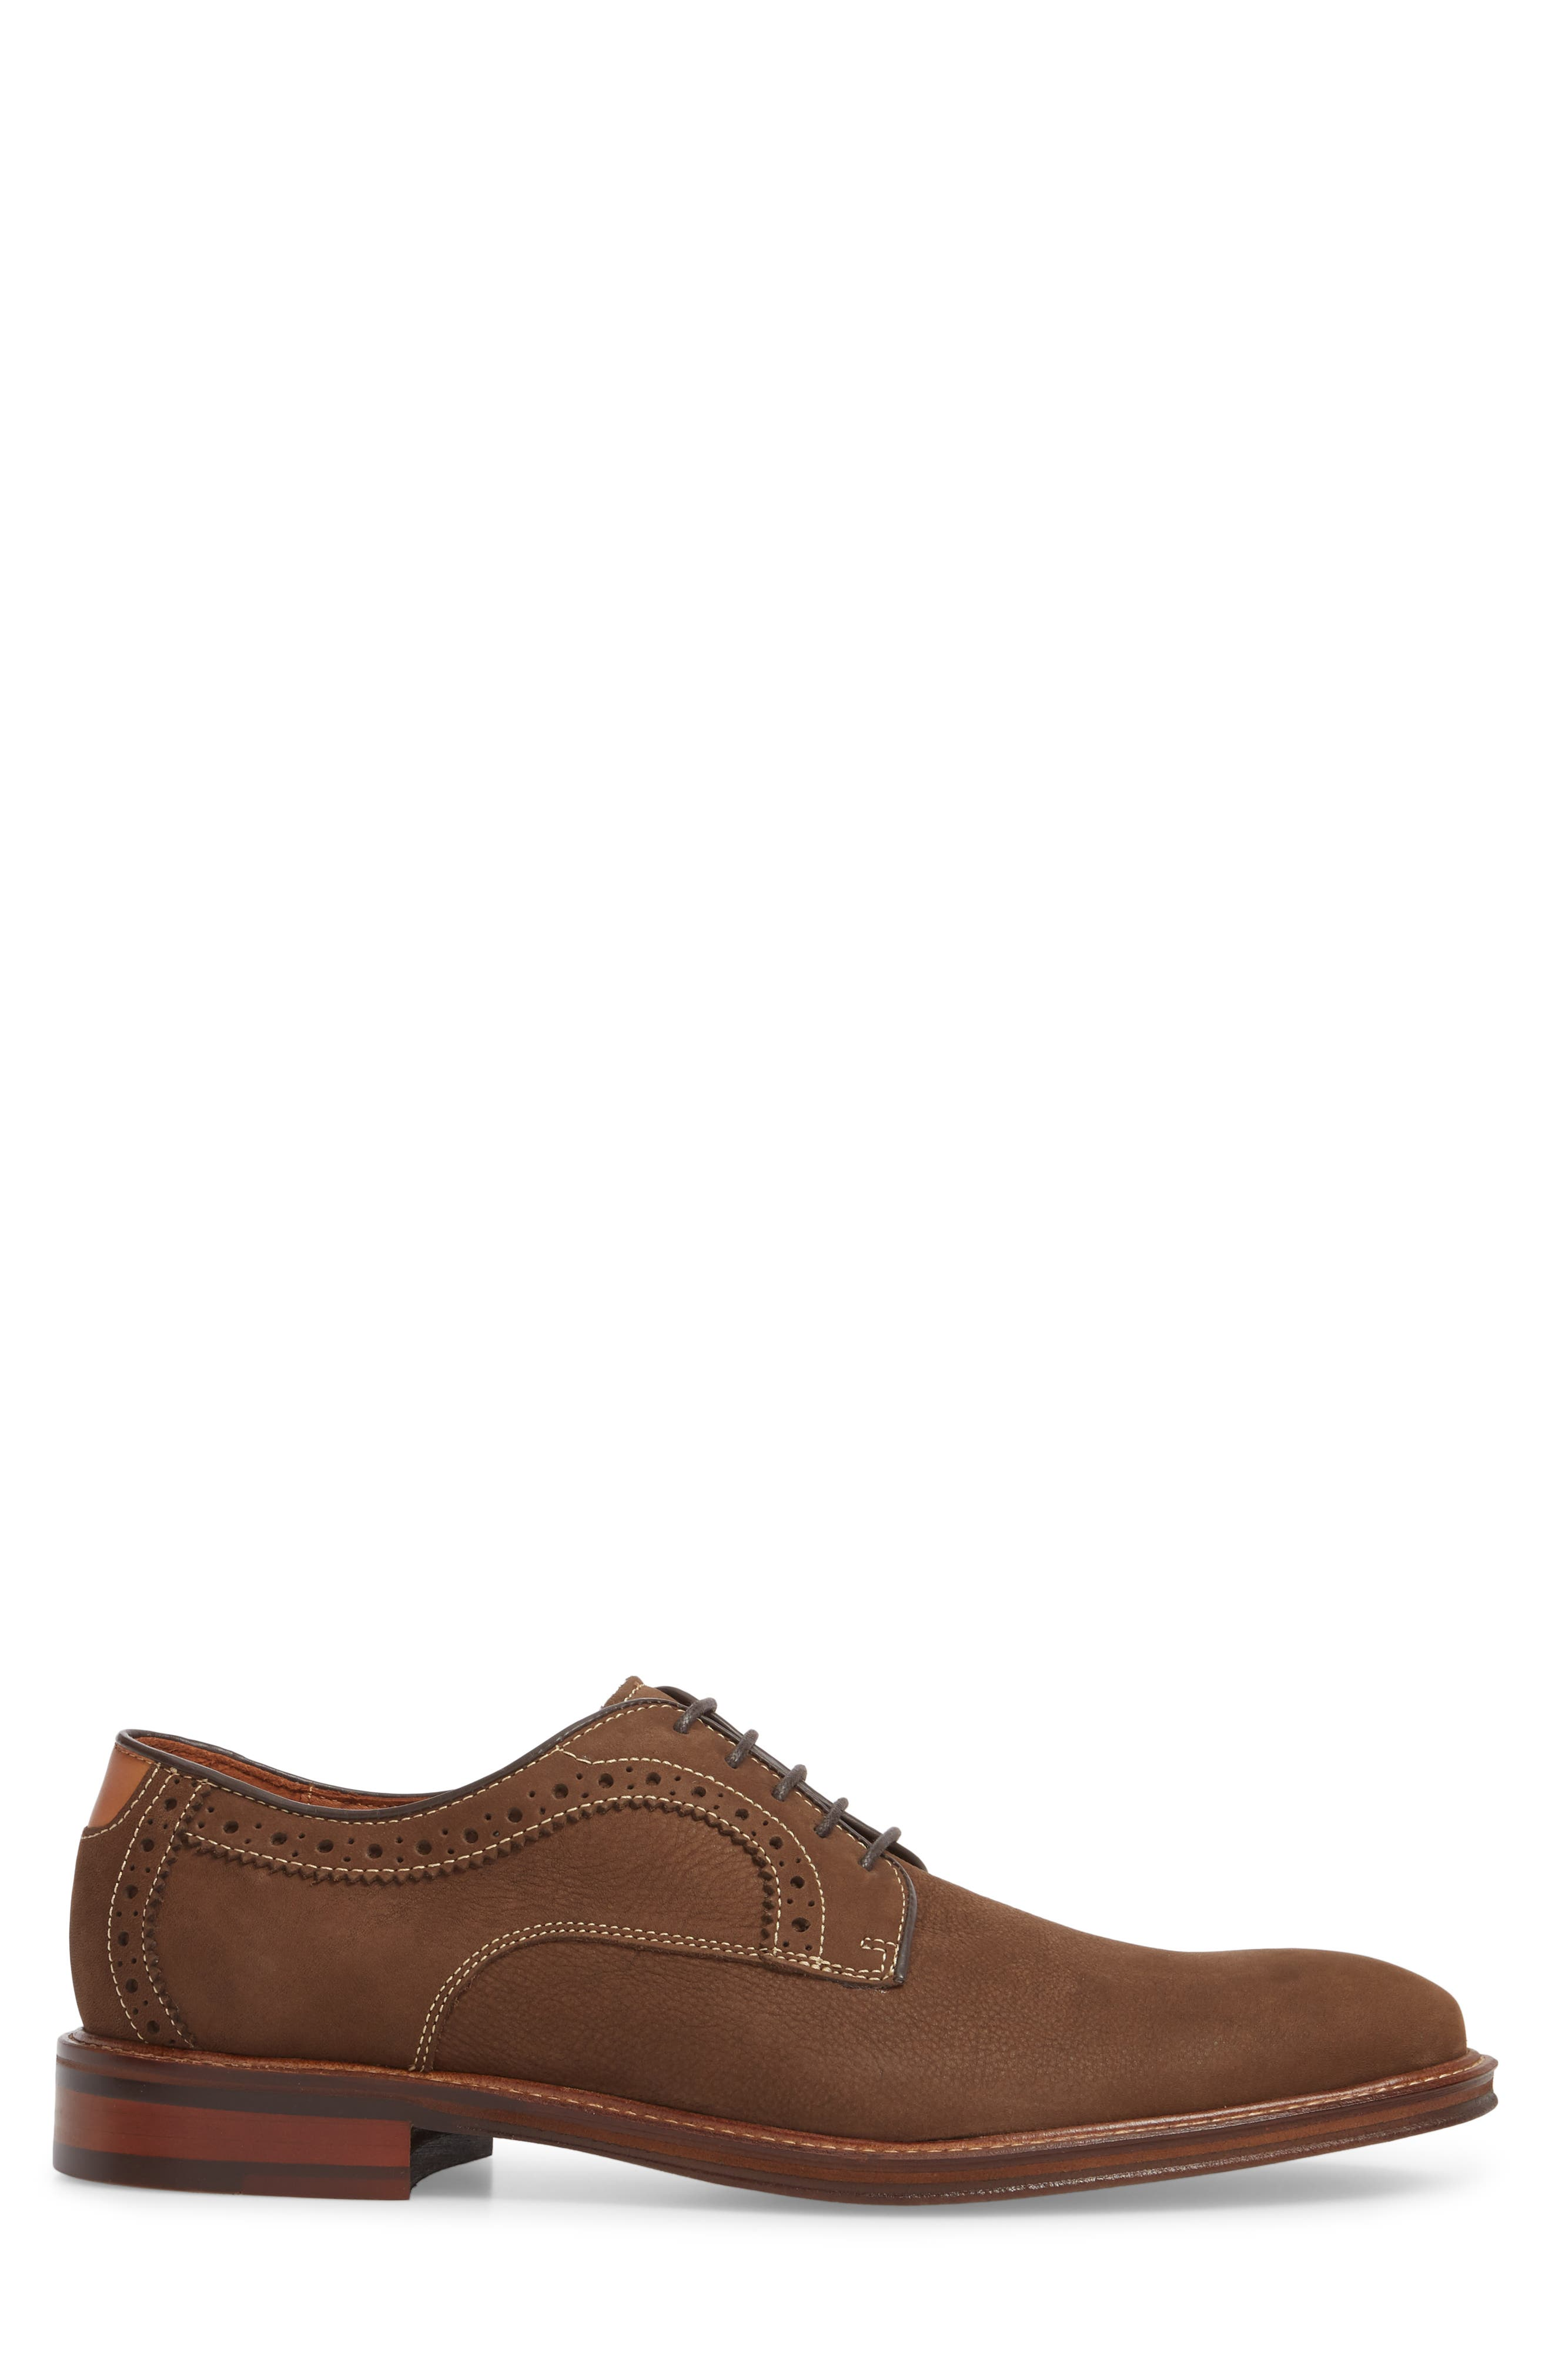 Warner Plain Toe Derby,                             Alternate thumbnail 3, color,                             BROWN NUBUCK